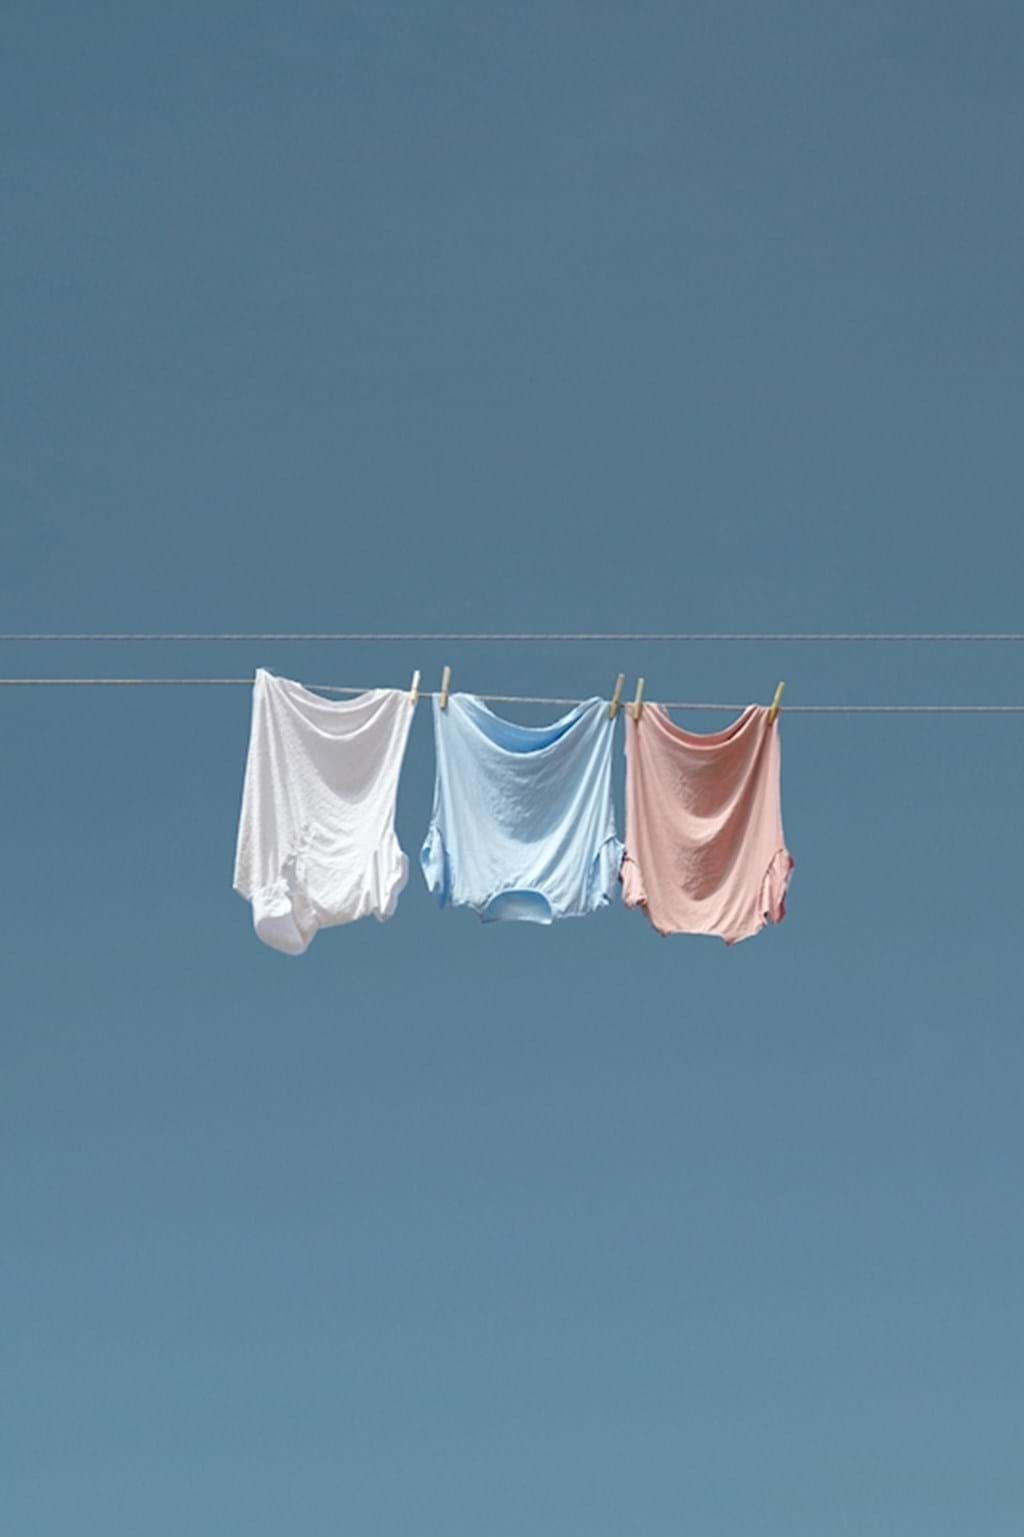 Poster: Laundry on a wire - Digital